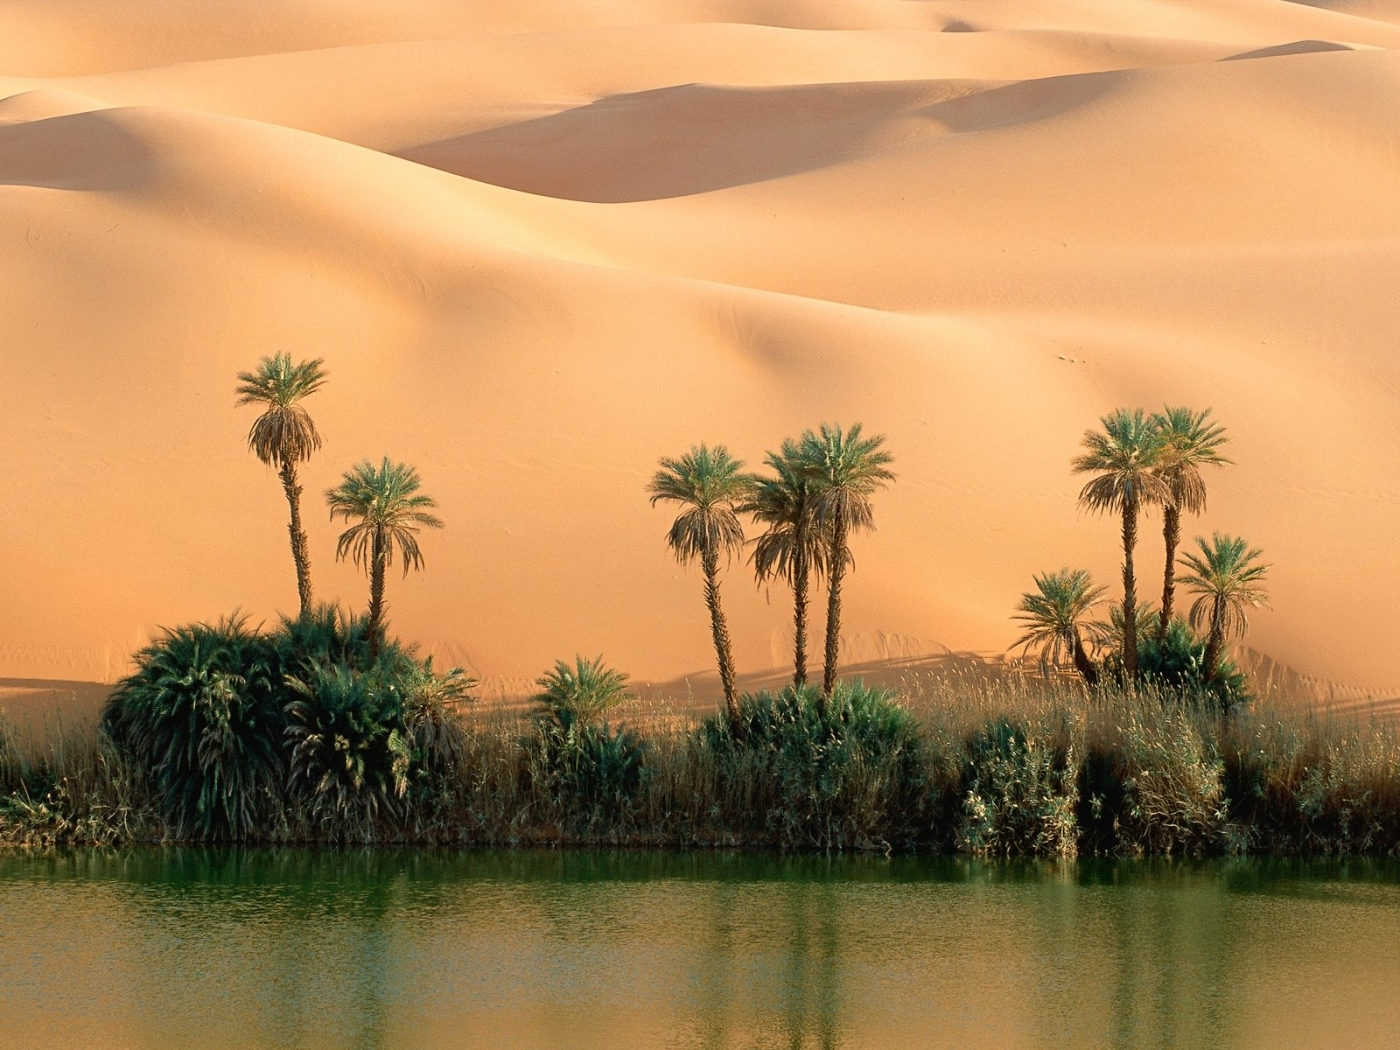 27610 download wallpaper Landscape, Sand, Palms, Desert screensavers and pictures for free